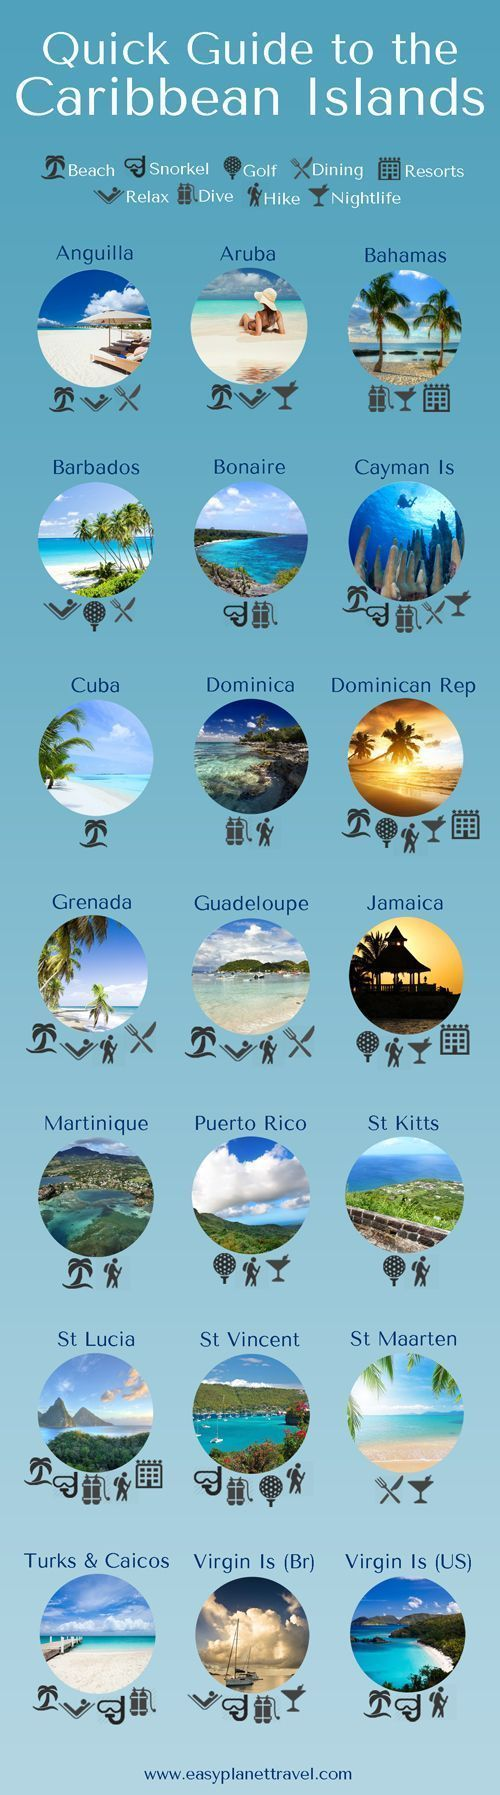 So many islands to choose from! These guides will help make a good decision: beachblissliving....